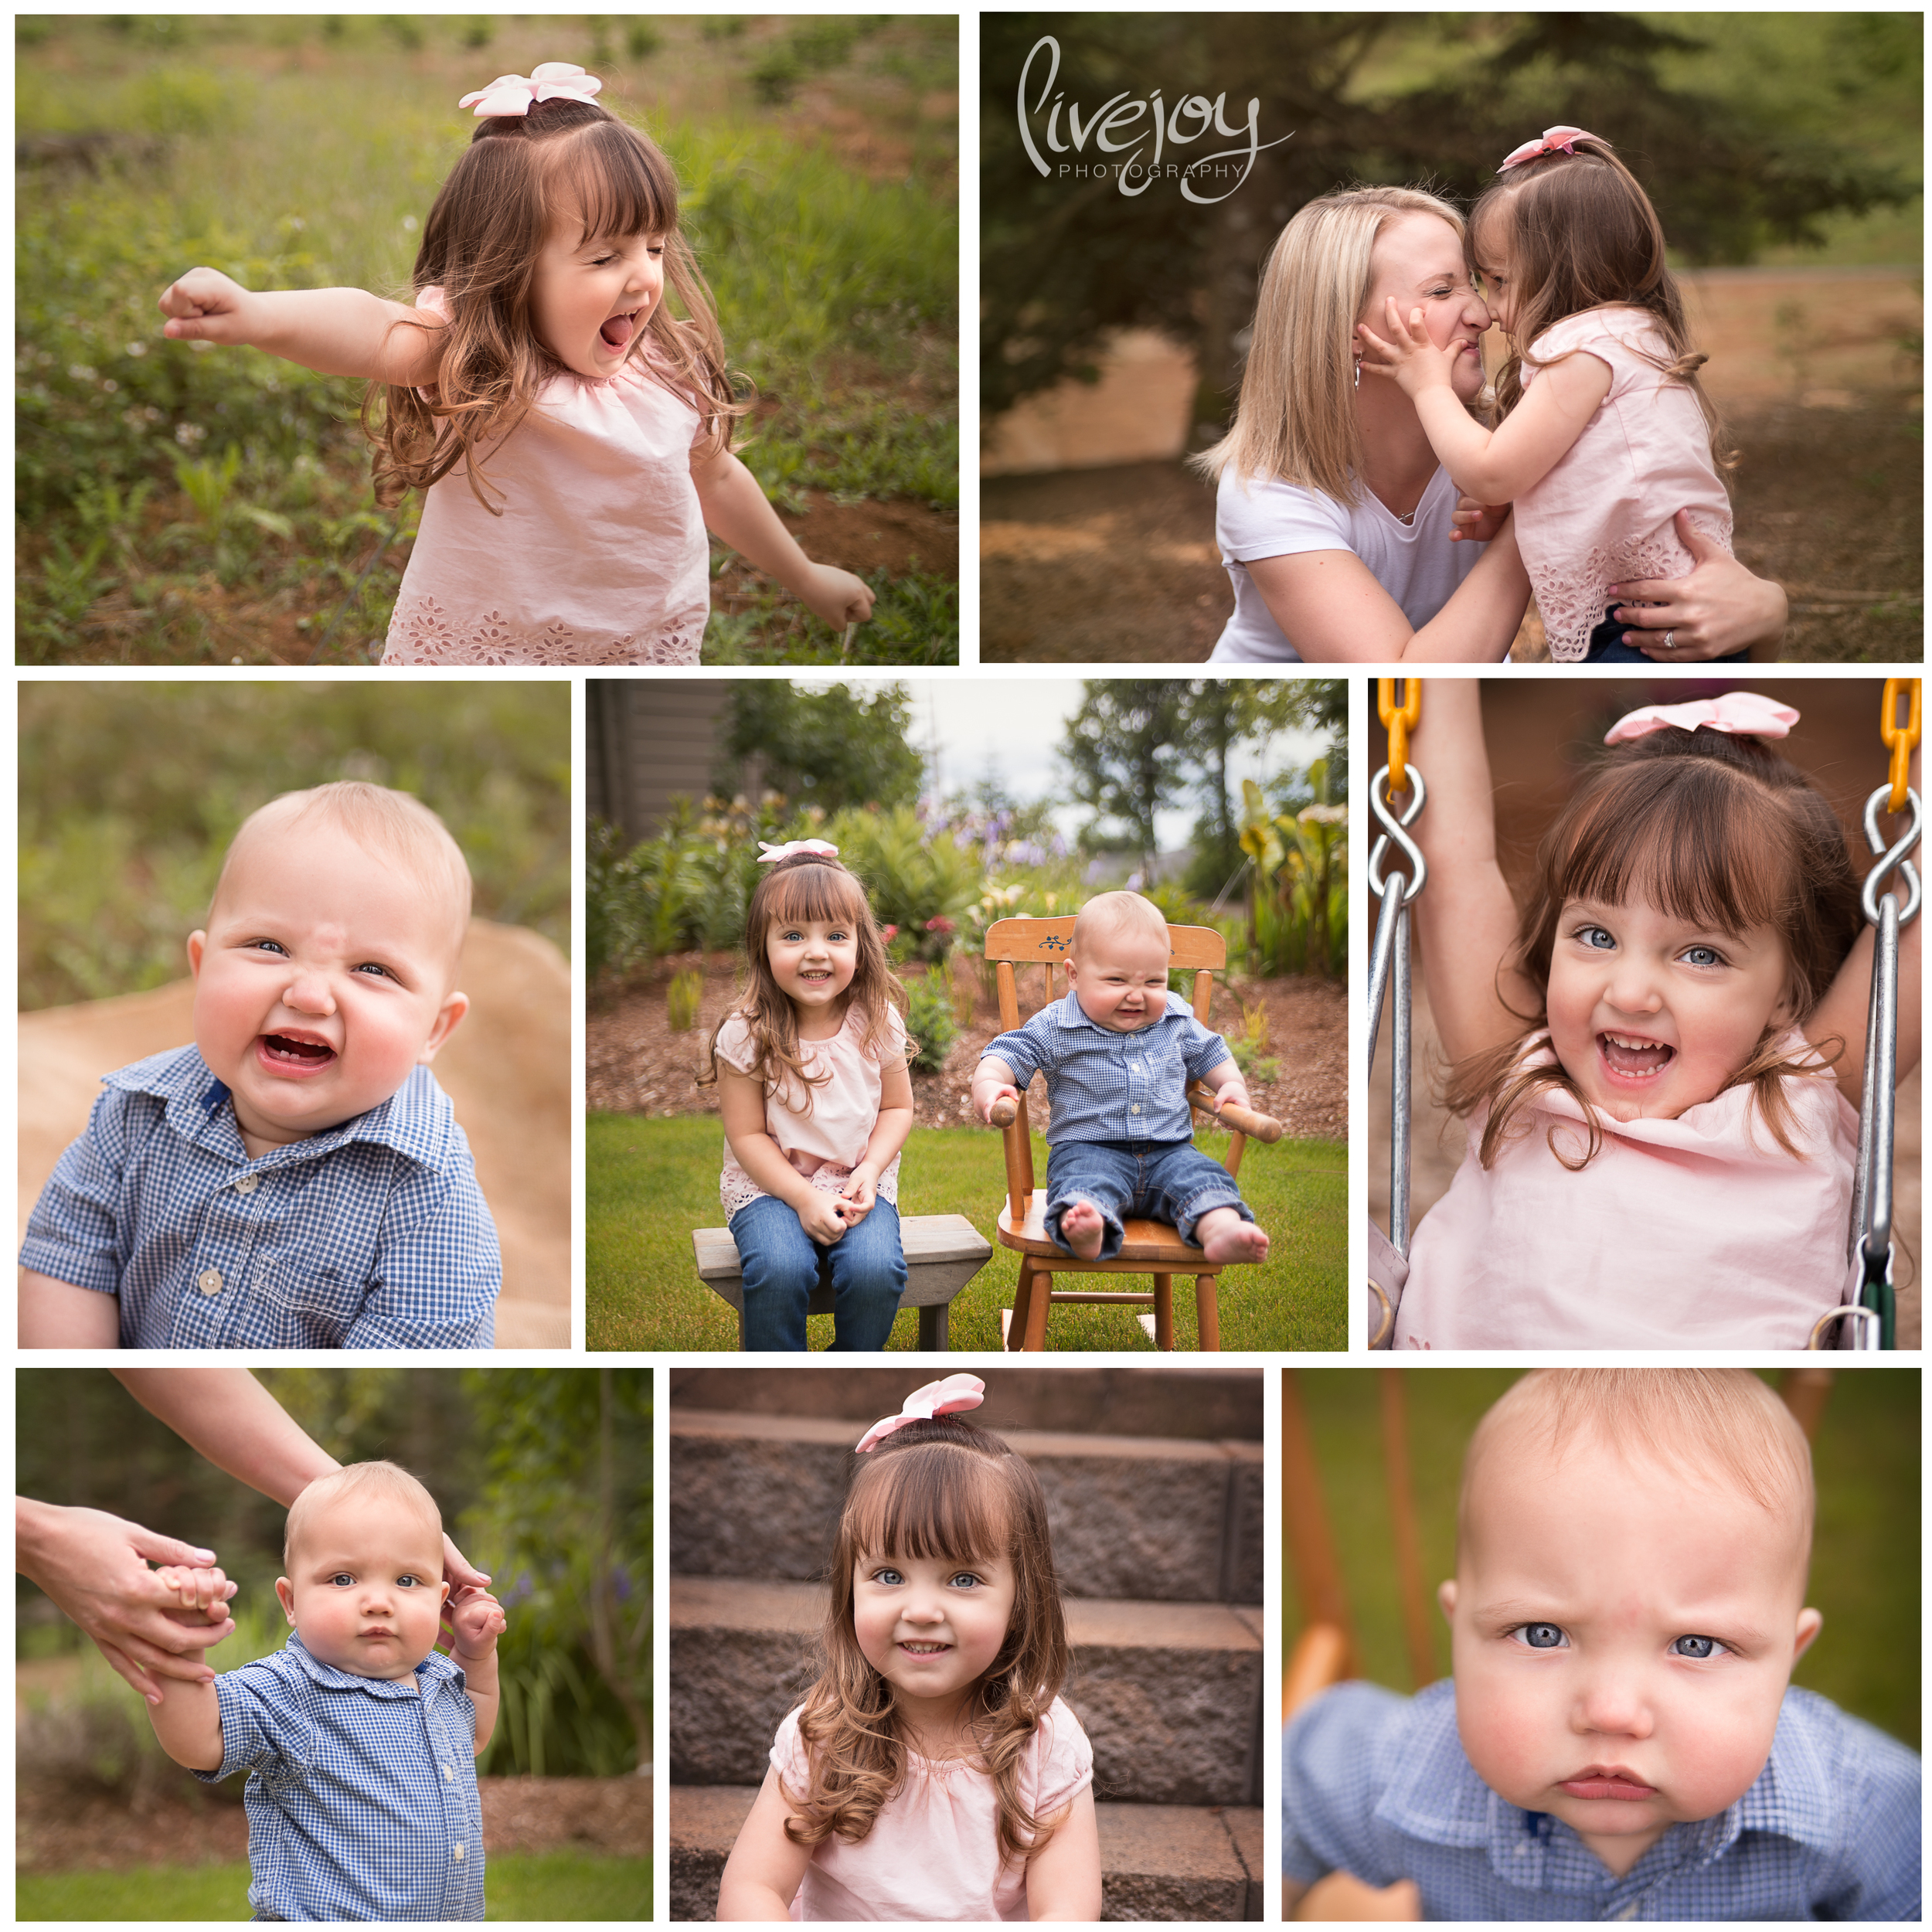 Sibling/Family Session | LiveJoy Photography | Oregon